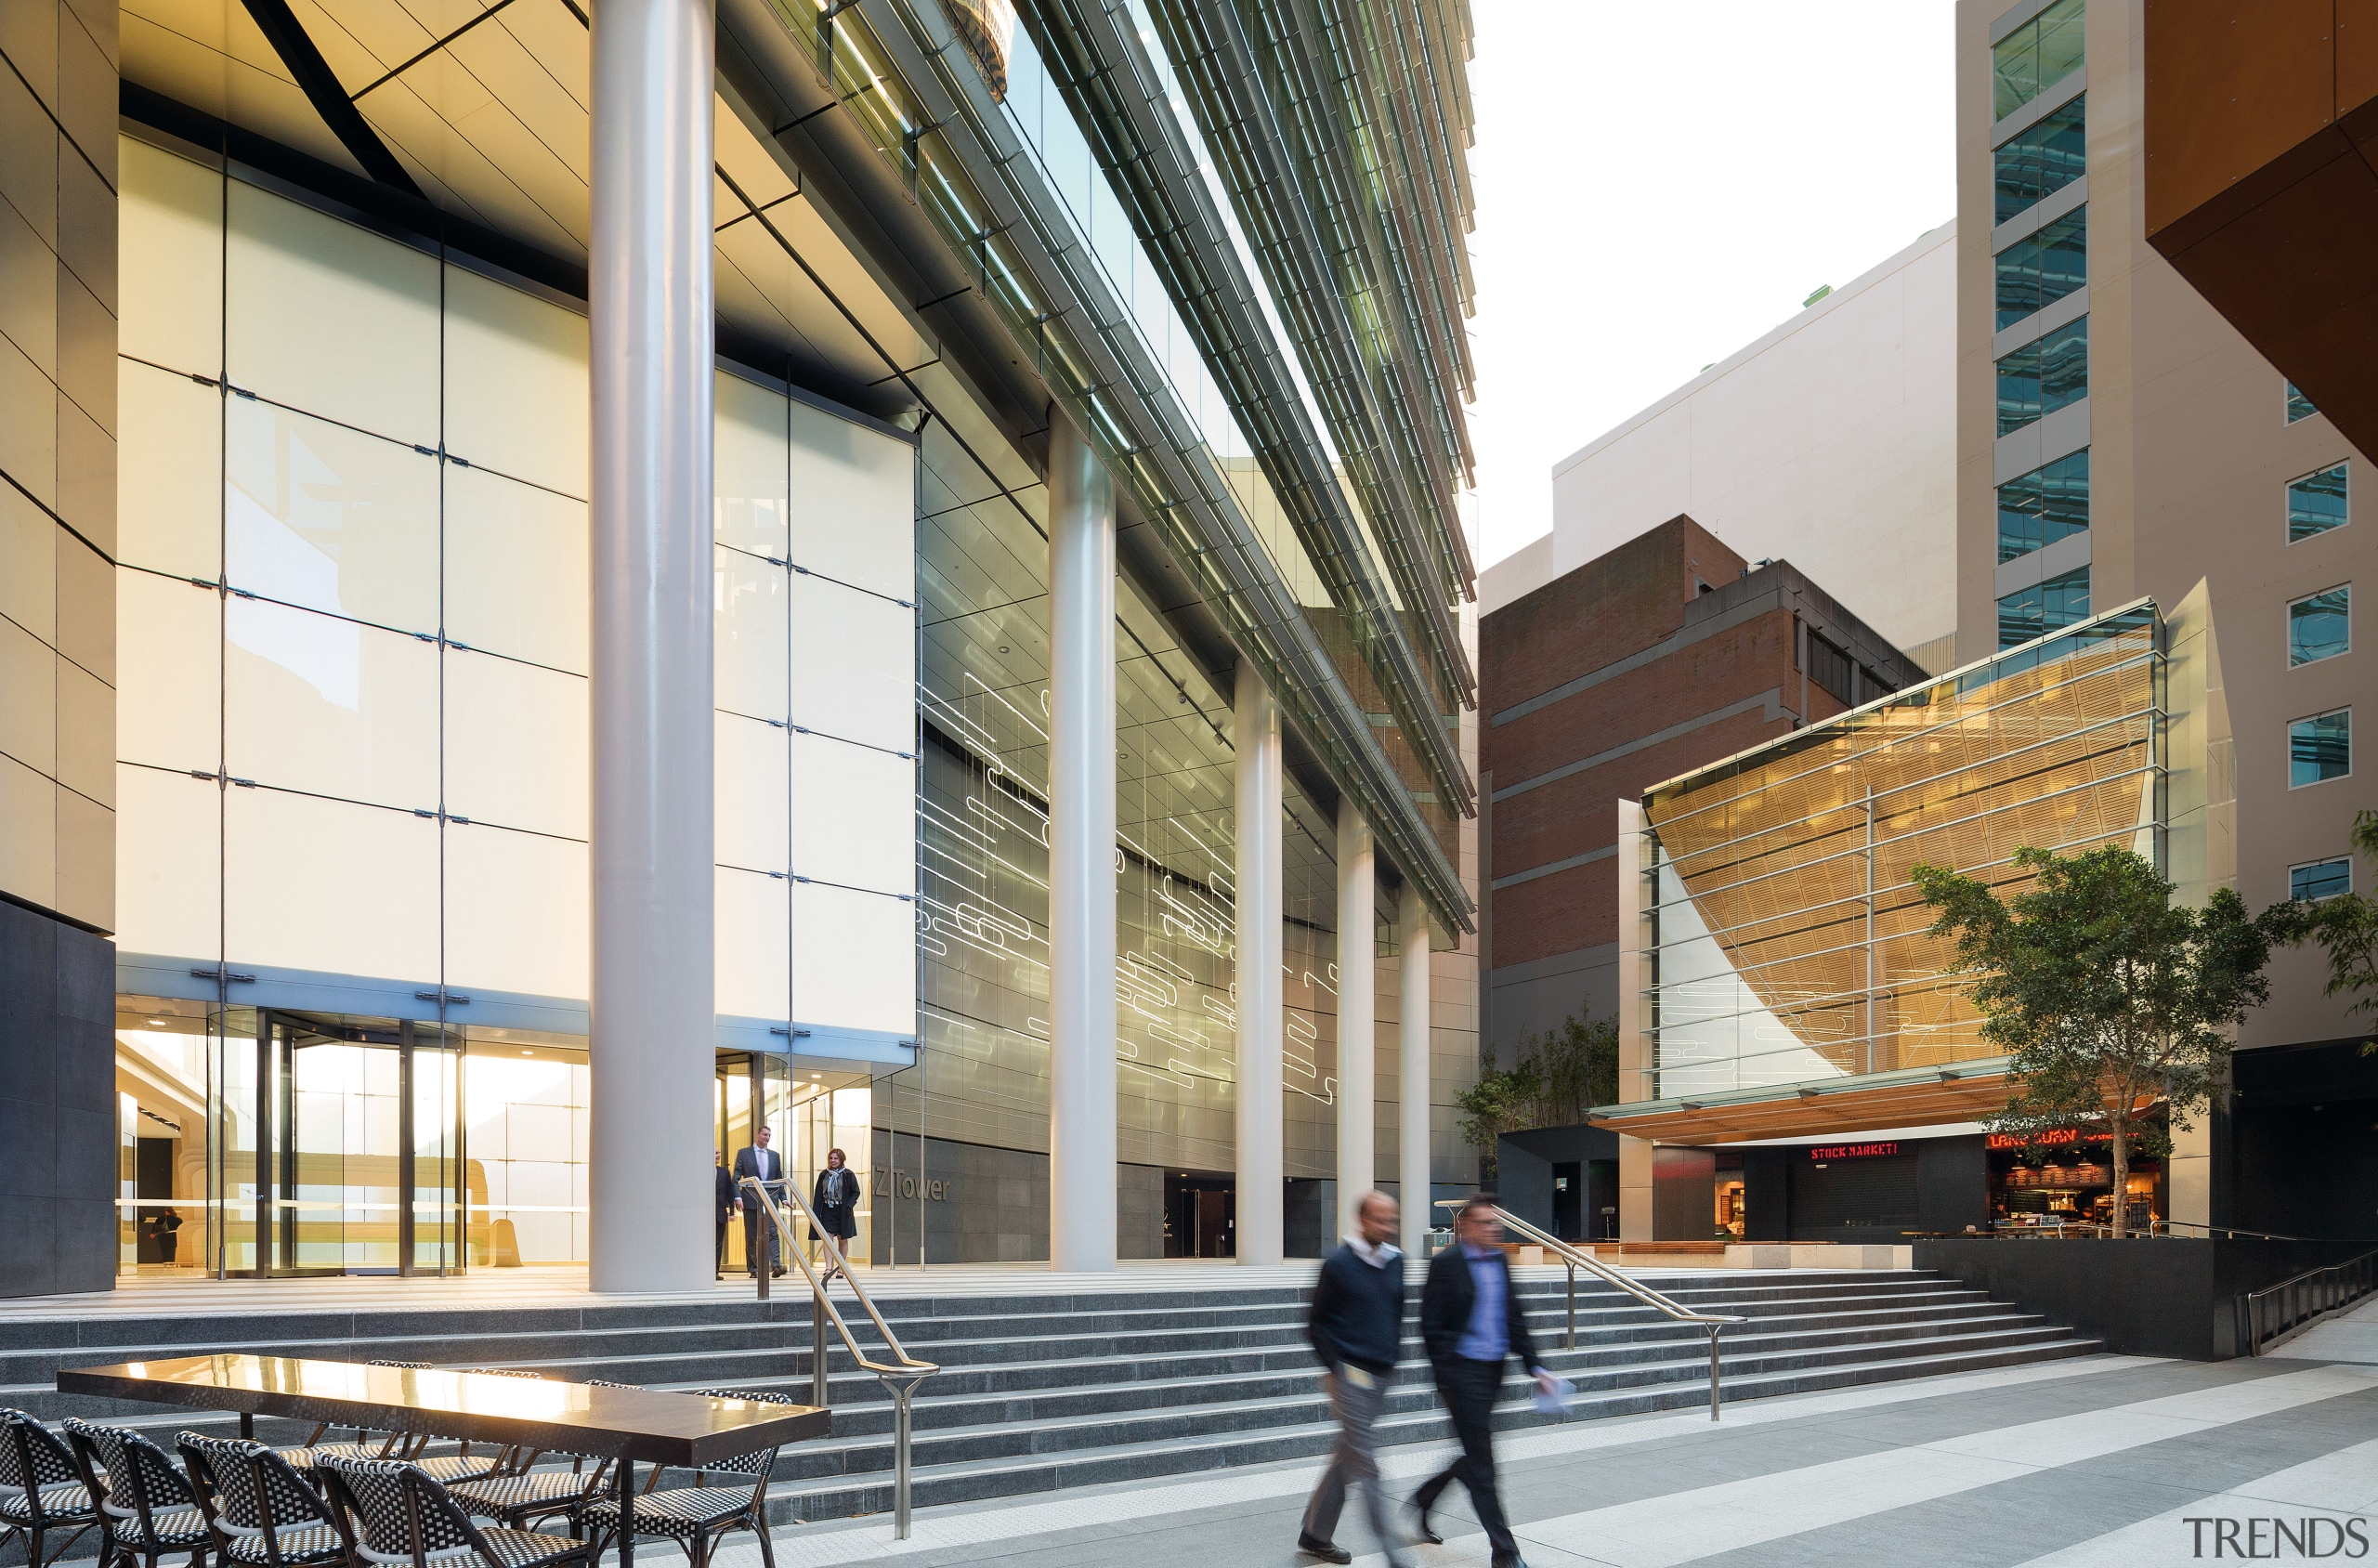 Paving with alternating bands of light and dark architecture, building, commercial building, condominium, corporate headquarters, daylighting, facade, lobby, metropolitan area, mixed use, gray, white